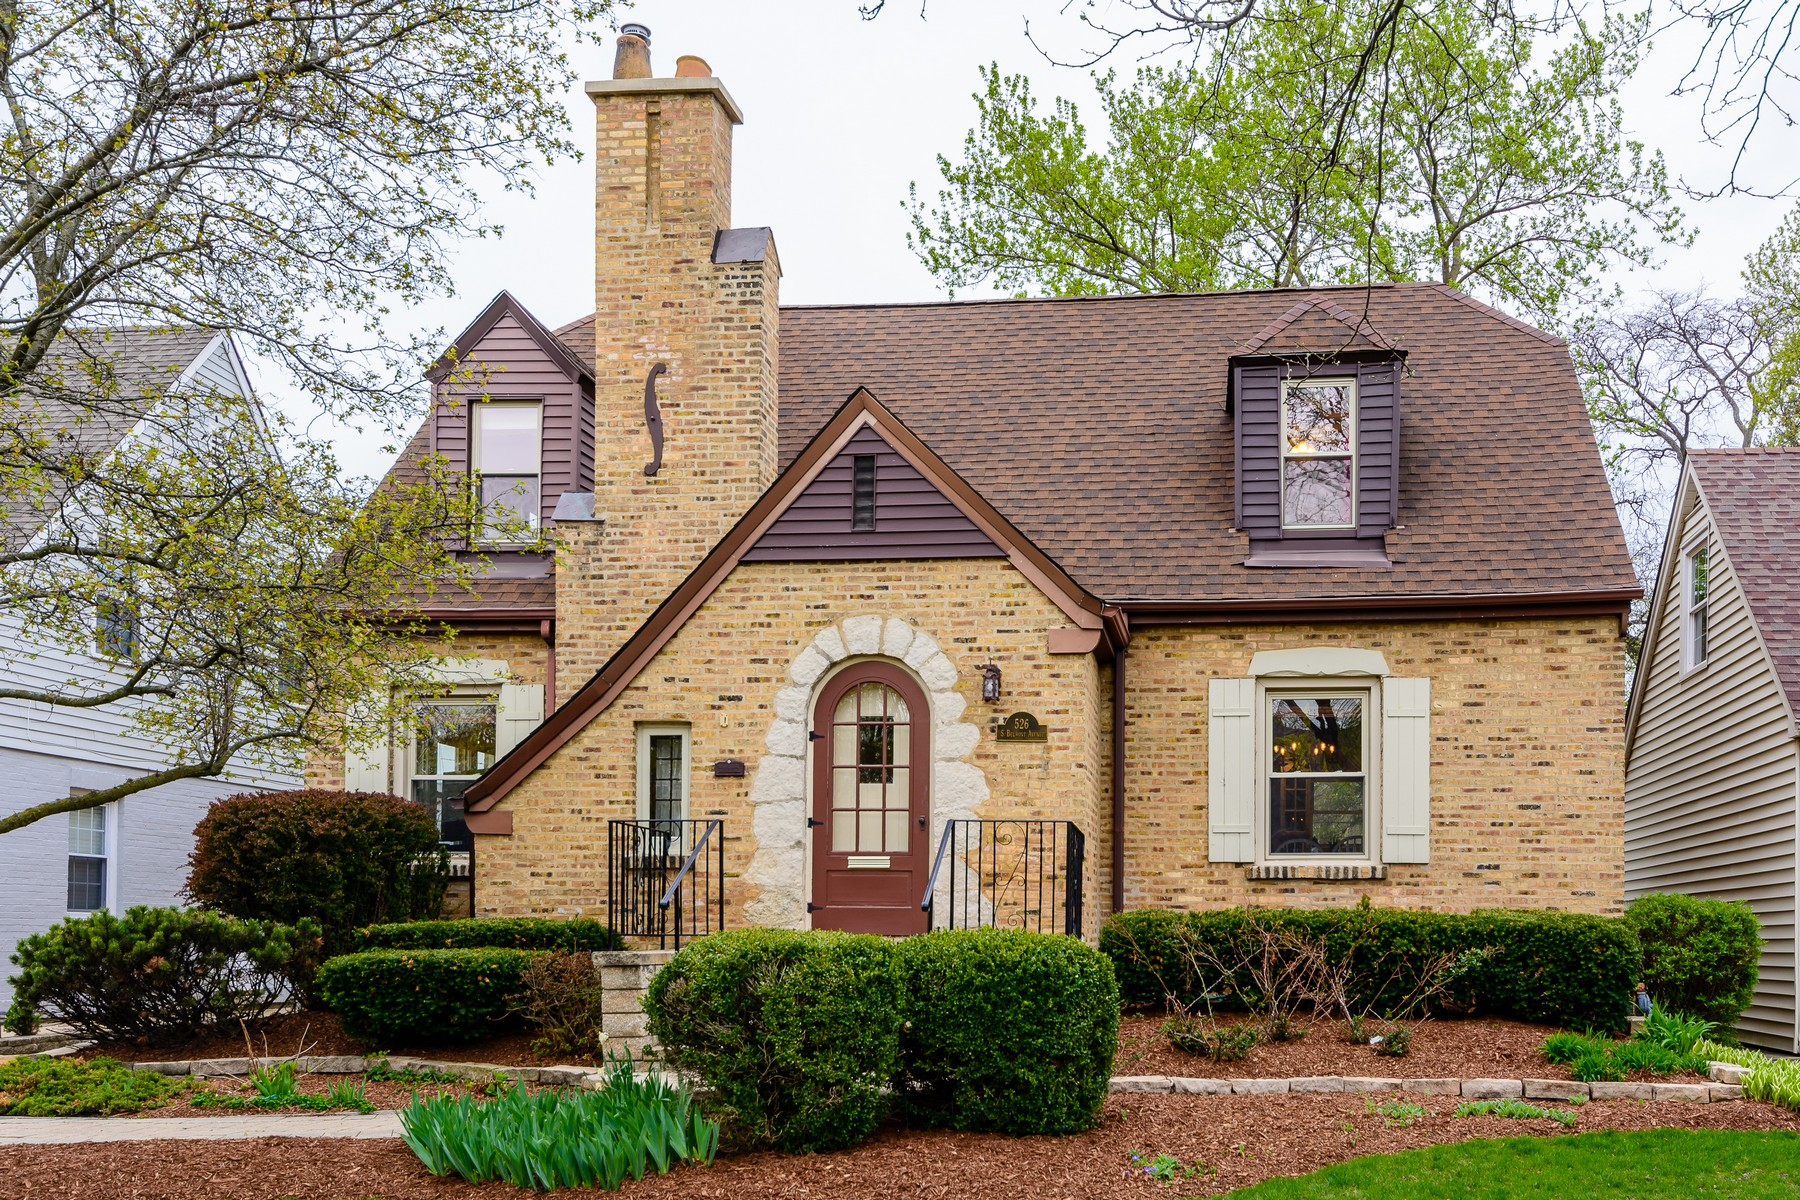 Moradia para Venda às Beautiful English Tudor 526 S Belmont Ave Arlington Heights, Illinois, 60005 Estados Unidos